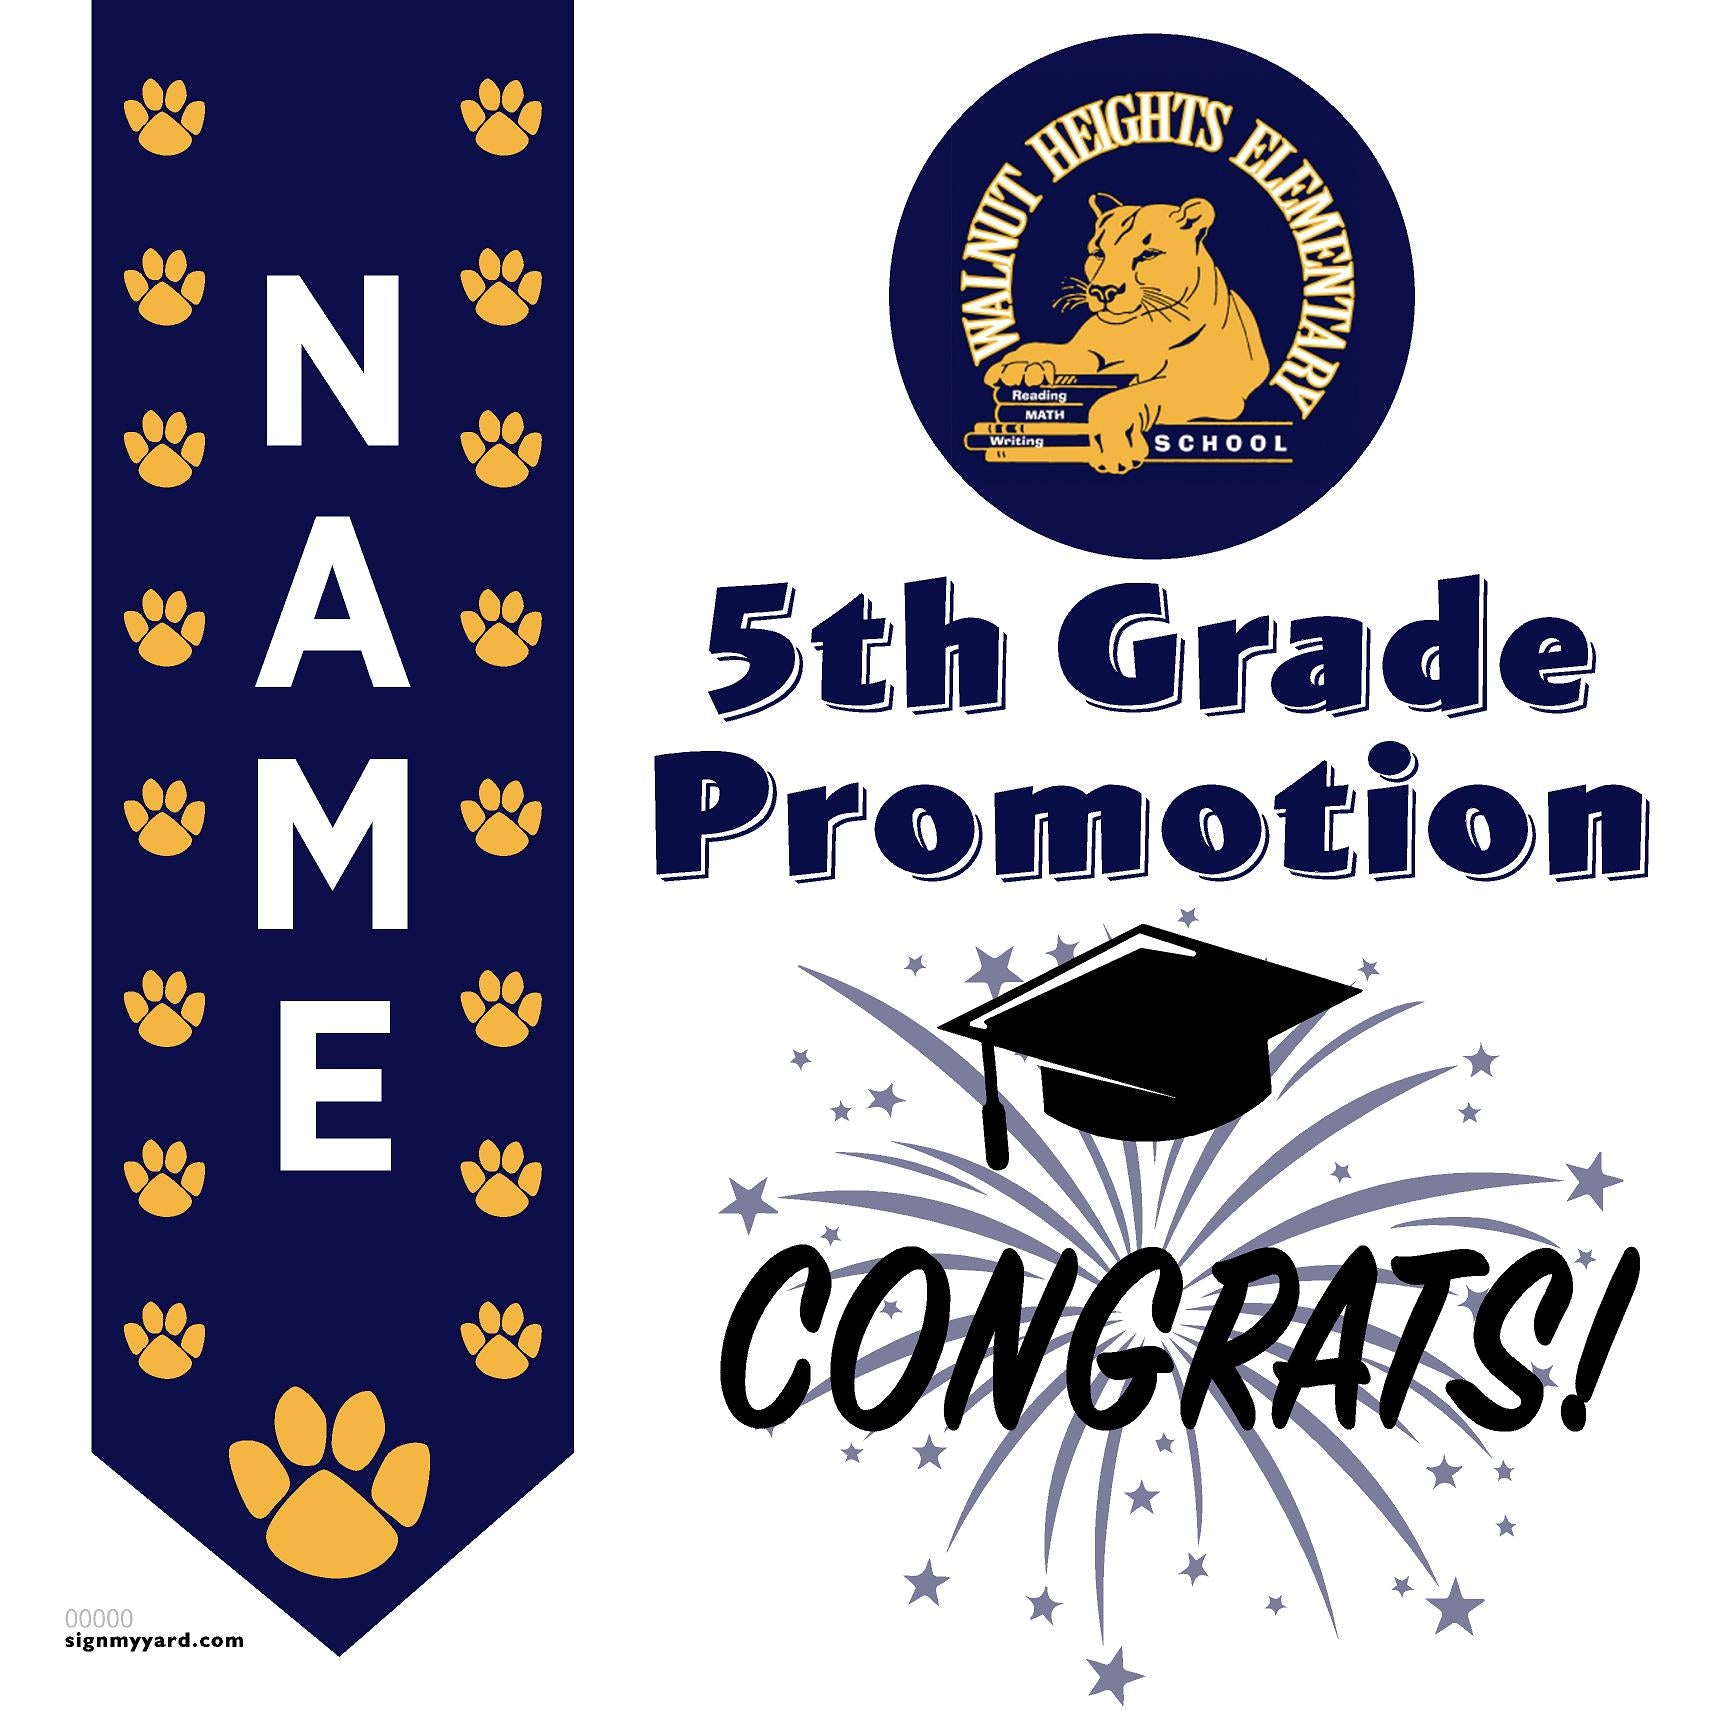 Walnut Heights Elementary School 5th Grade Promotion 24x24 #shineon2027 Yard Sign (Option B)